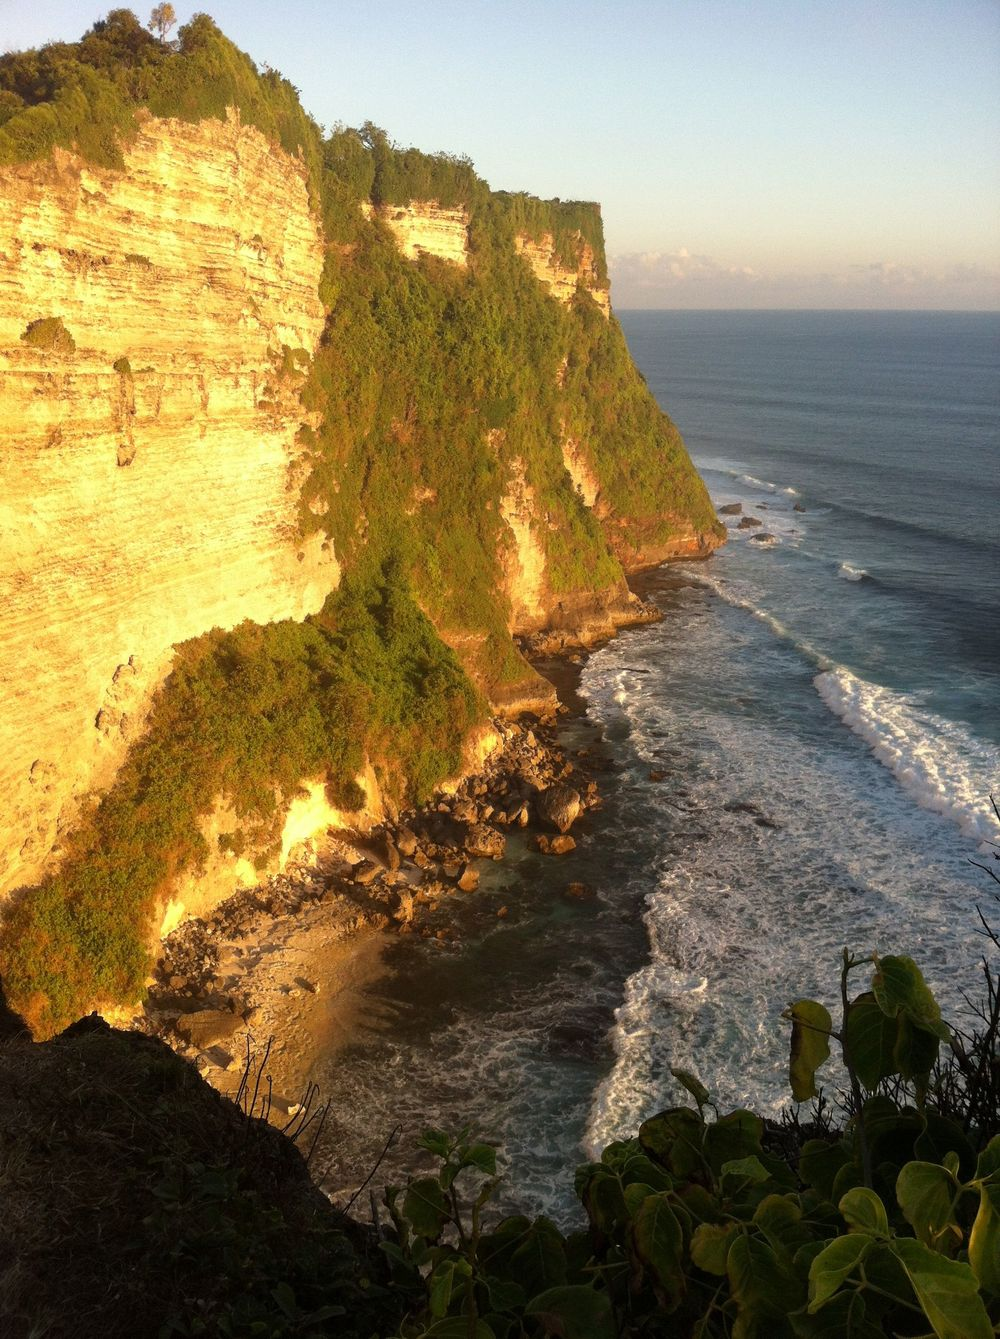 Sunset at Uluwatu Temple